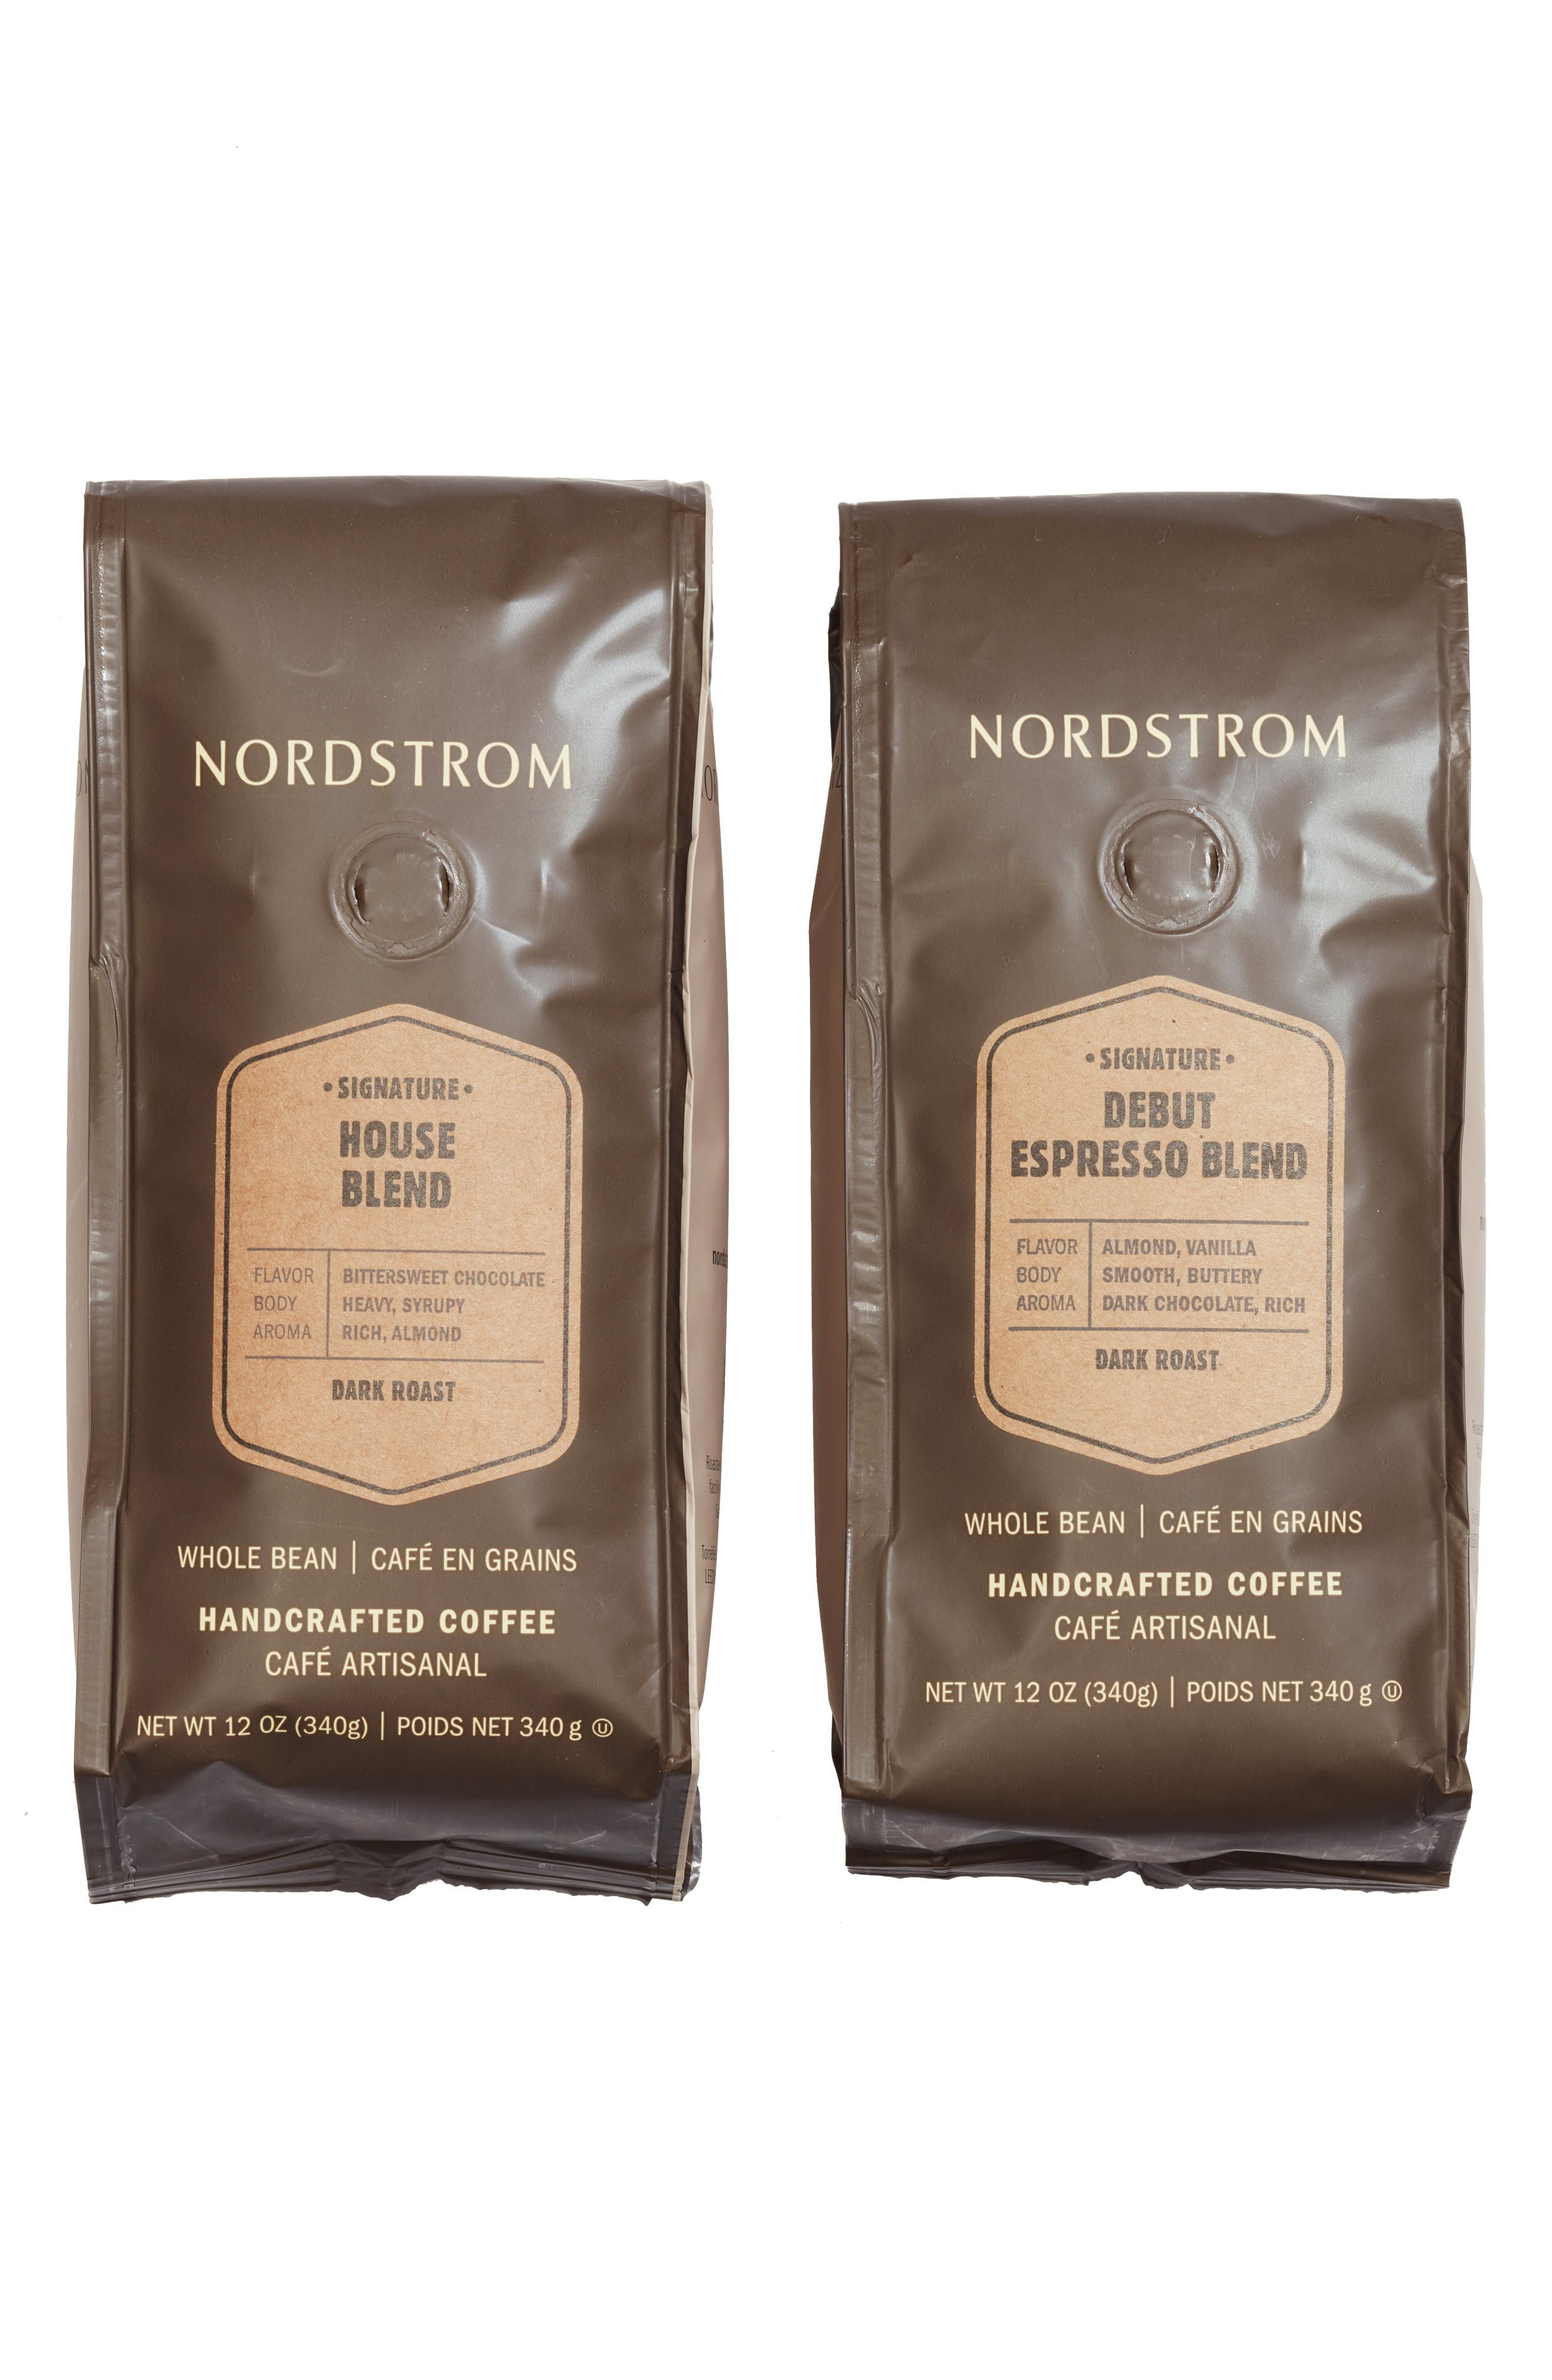 2-Pack Coffee Debut Espresso Blend Whole Bean Coffee,                             Main thumbnail 1, color,                             BEIGE/ KHAKI